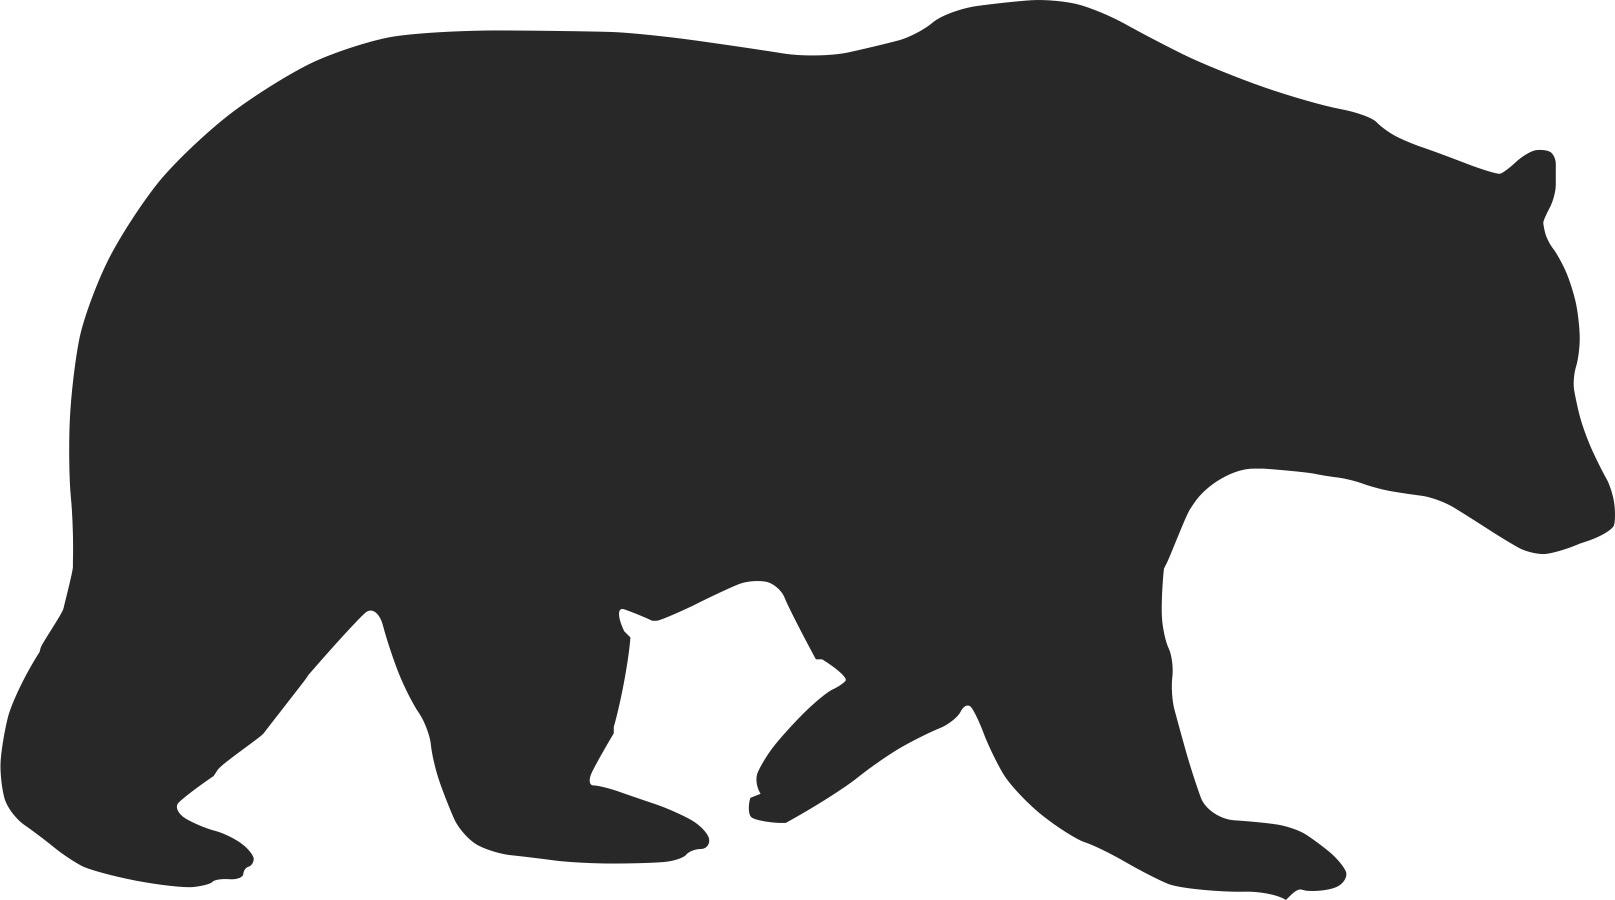 Sloth at getdrawings com. Bear clip art silhouette image black and white download